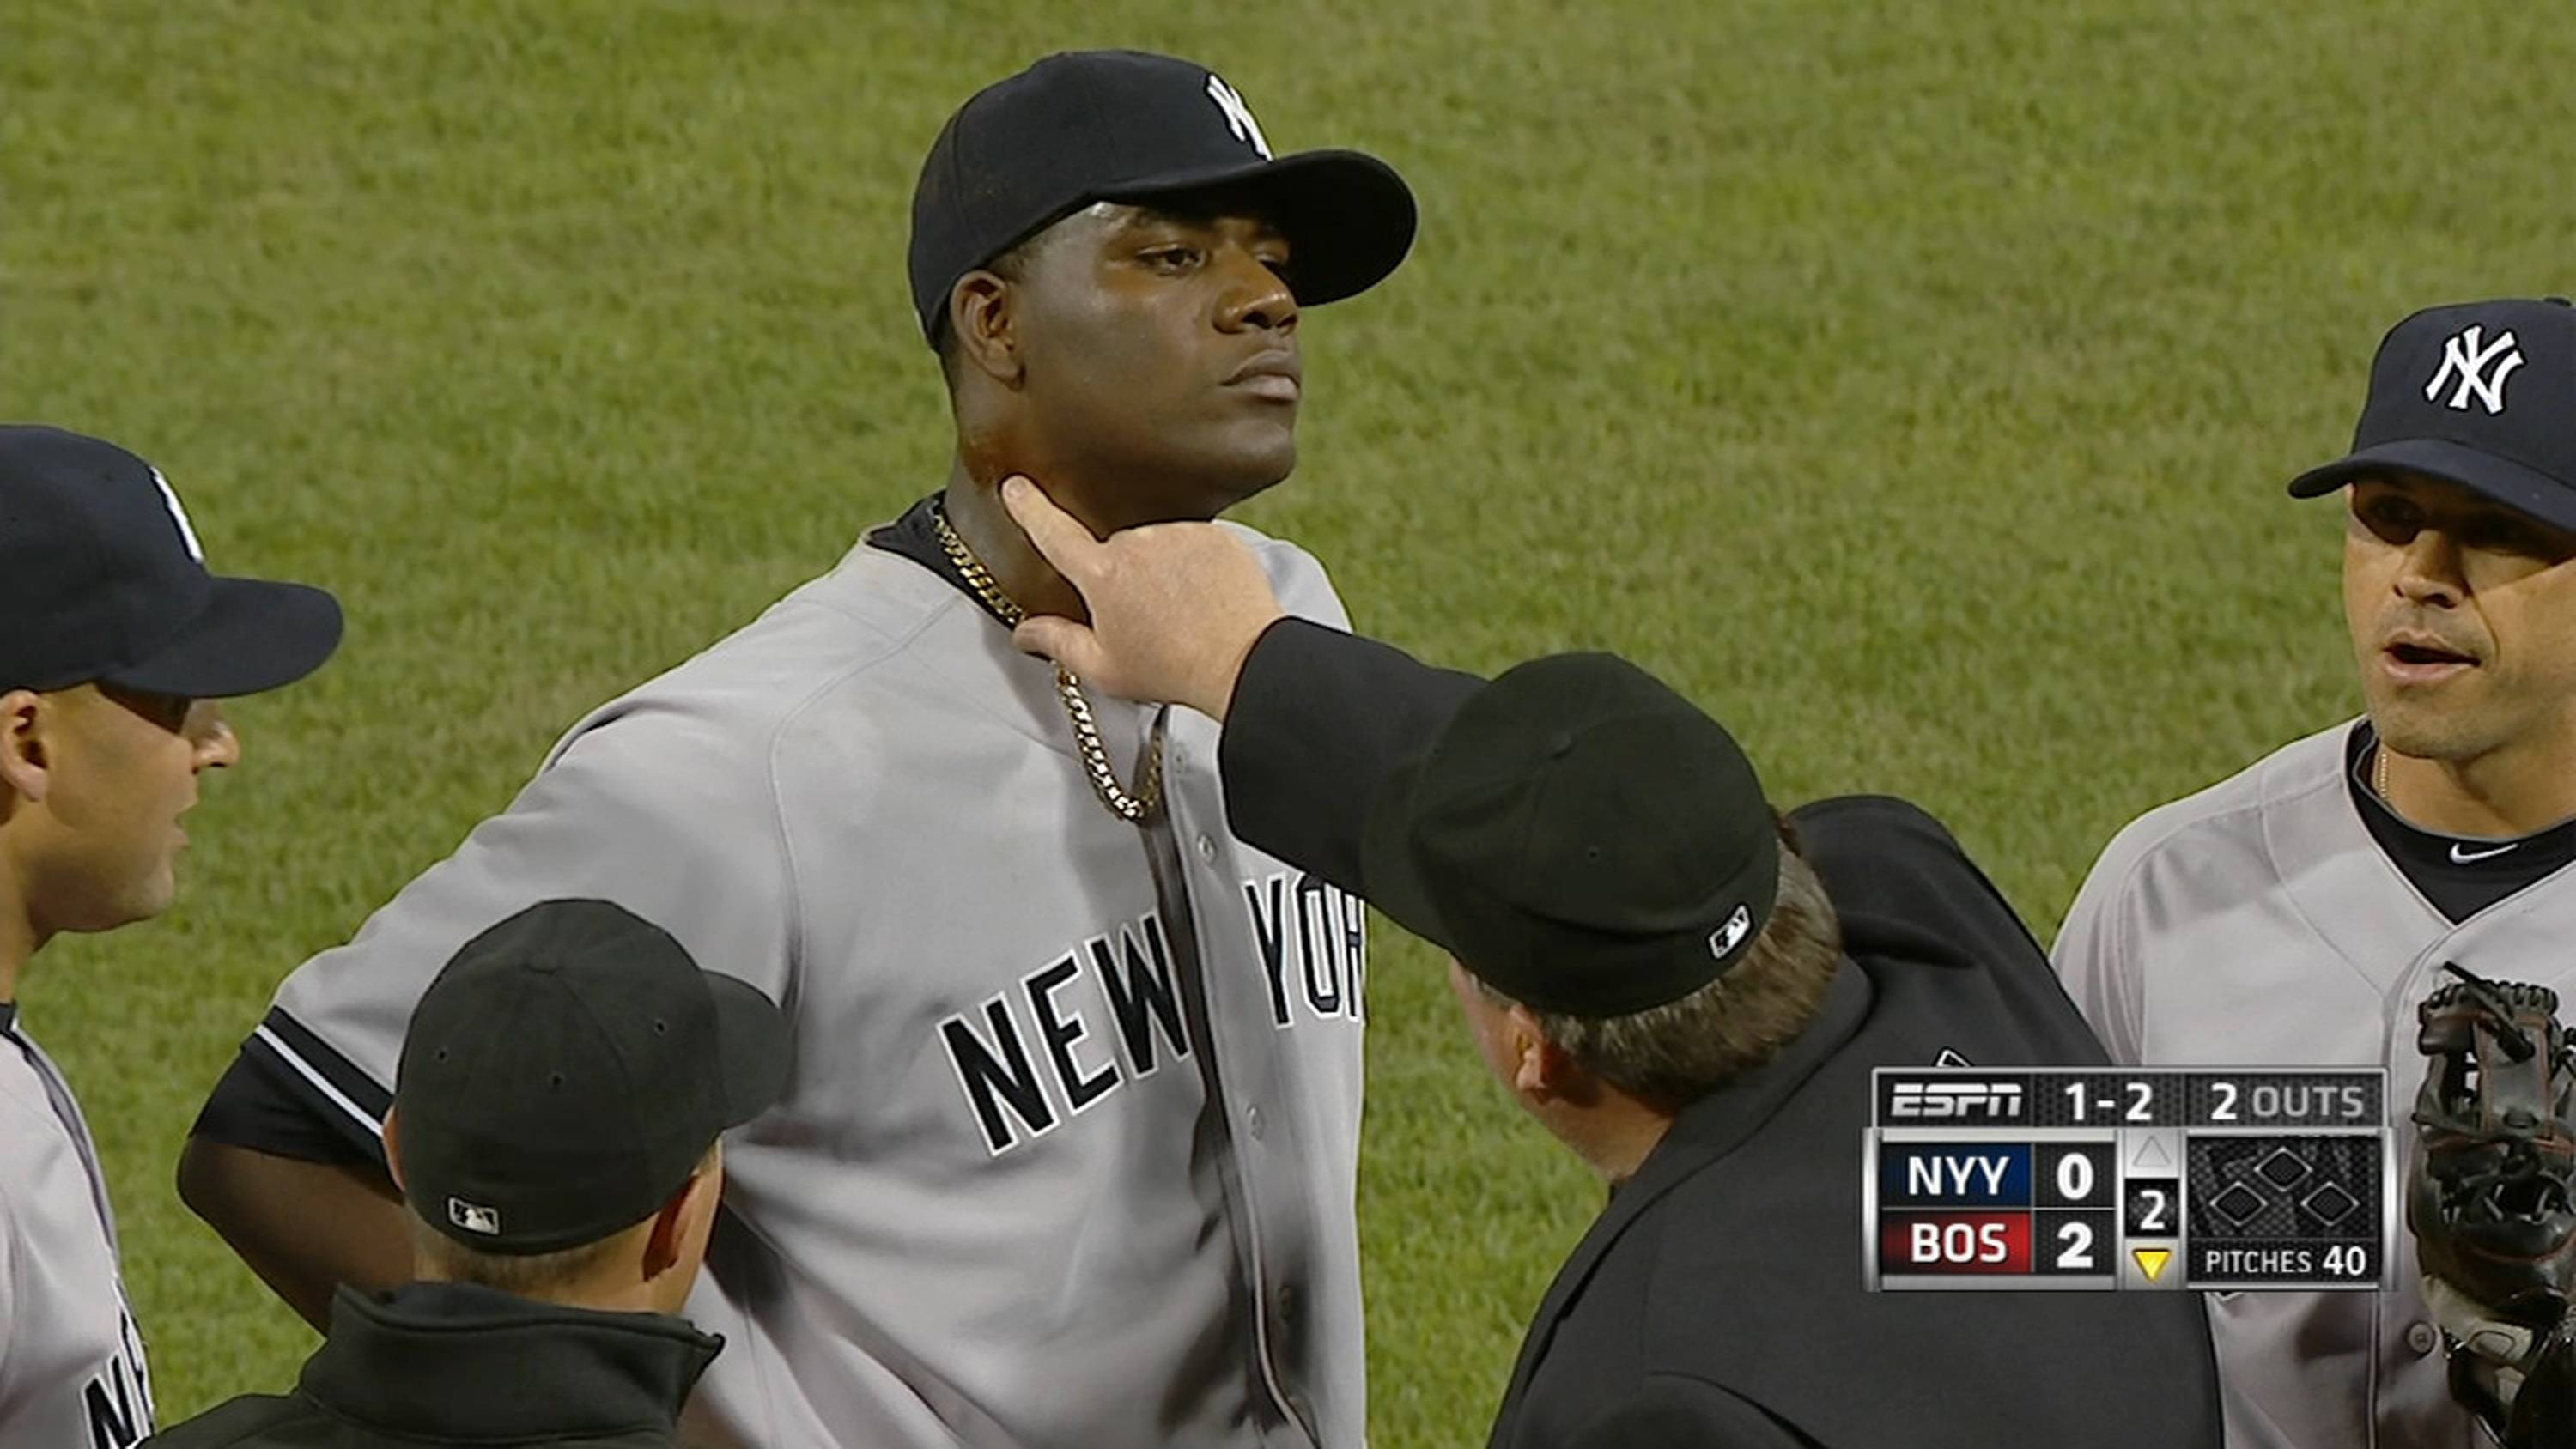 In this April 23, 2014 photo taken from video and provided by ESPN, home plate umpire Gerry Davis touches the neck of New York Yankees starting pitcher Michael Pineda in the second inning of the Yankees' baseball game against the Boston Red Sox at Fenway Park in Boston. Pineda was ejected after umpires found a foreign substance on his neck.